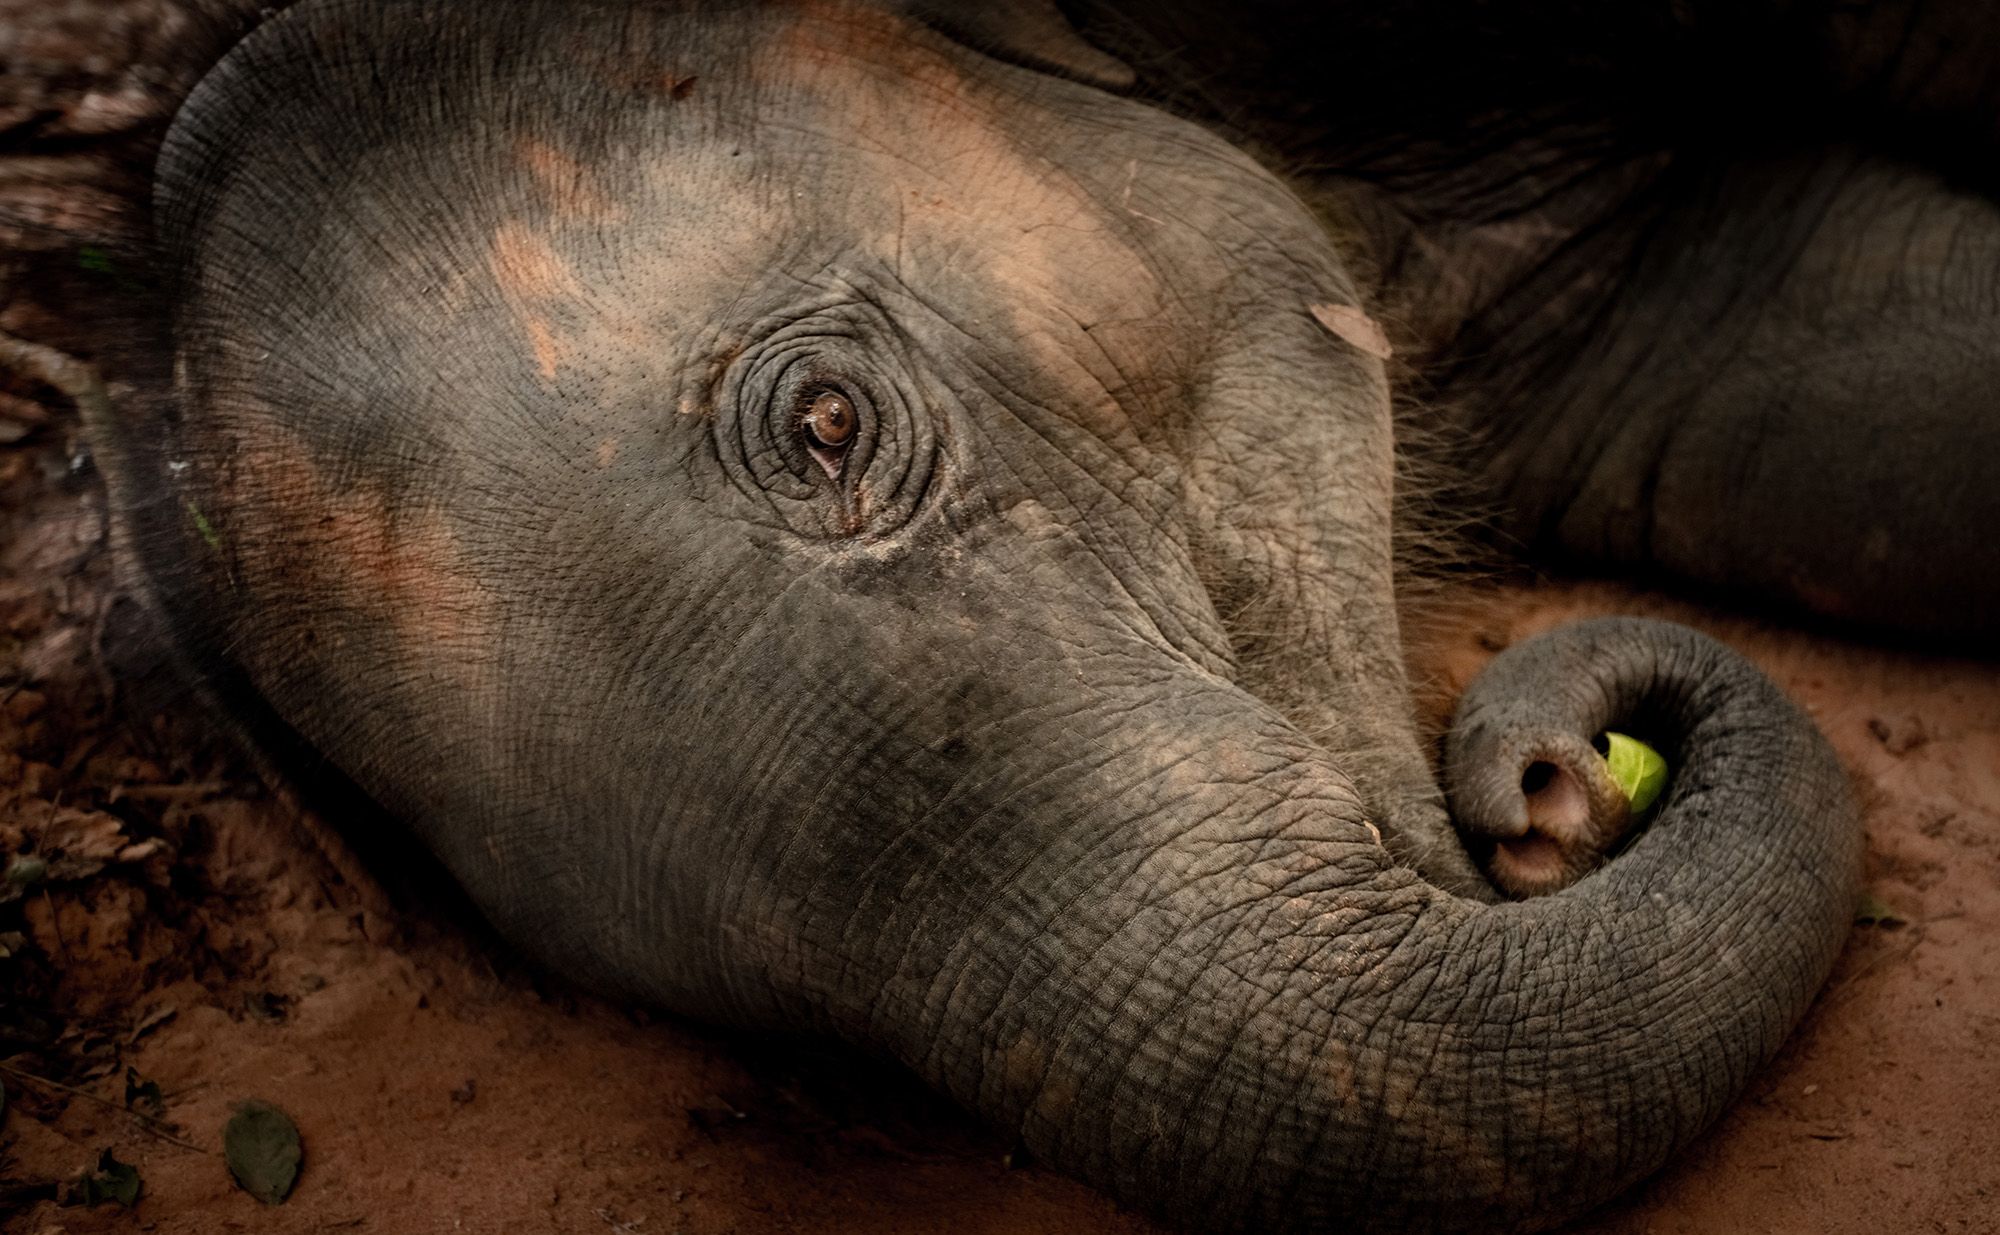 Saving starving elephants in Asian sanctuaries and parks